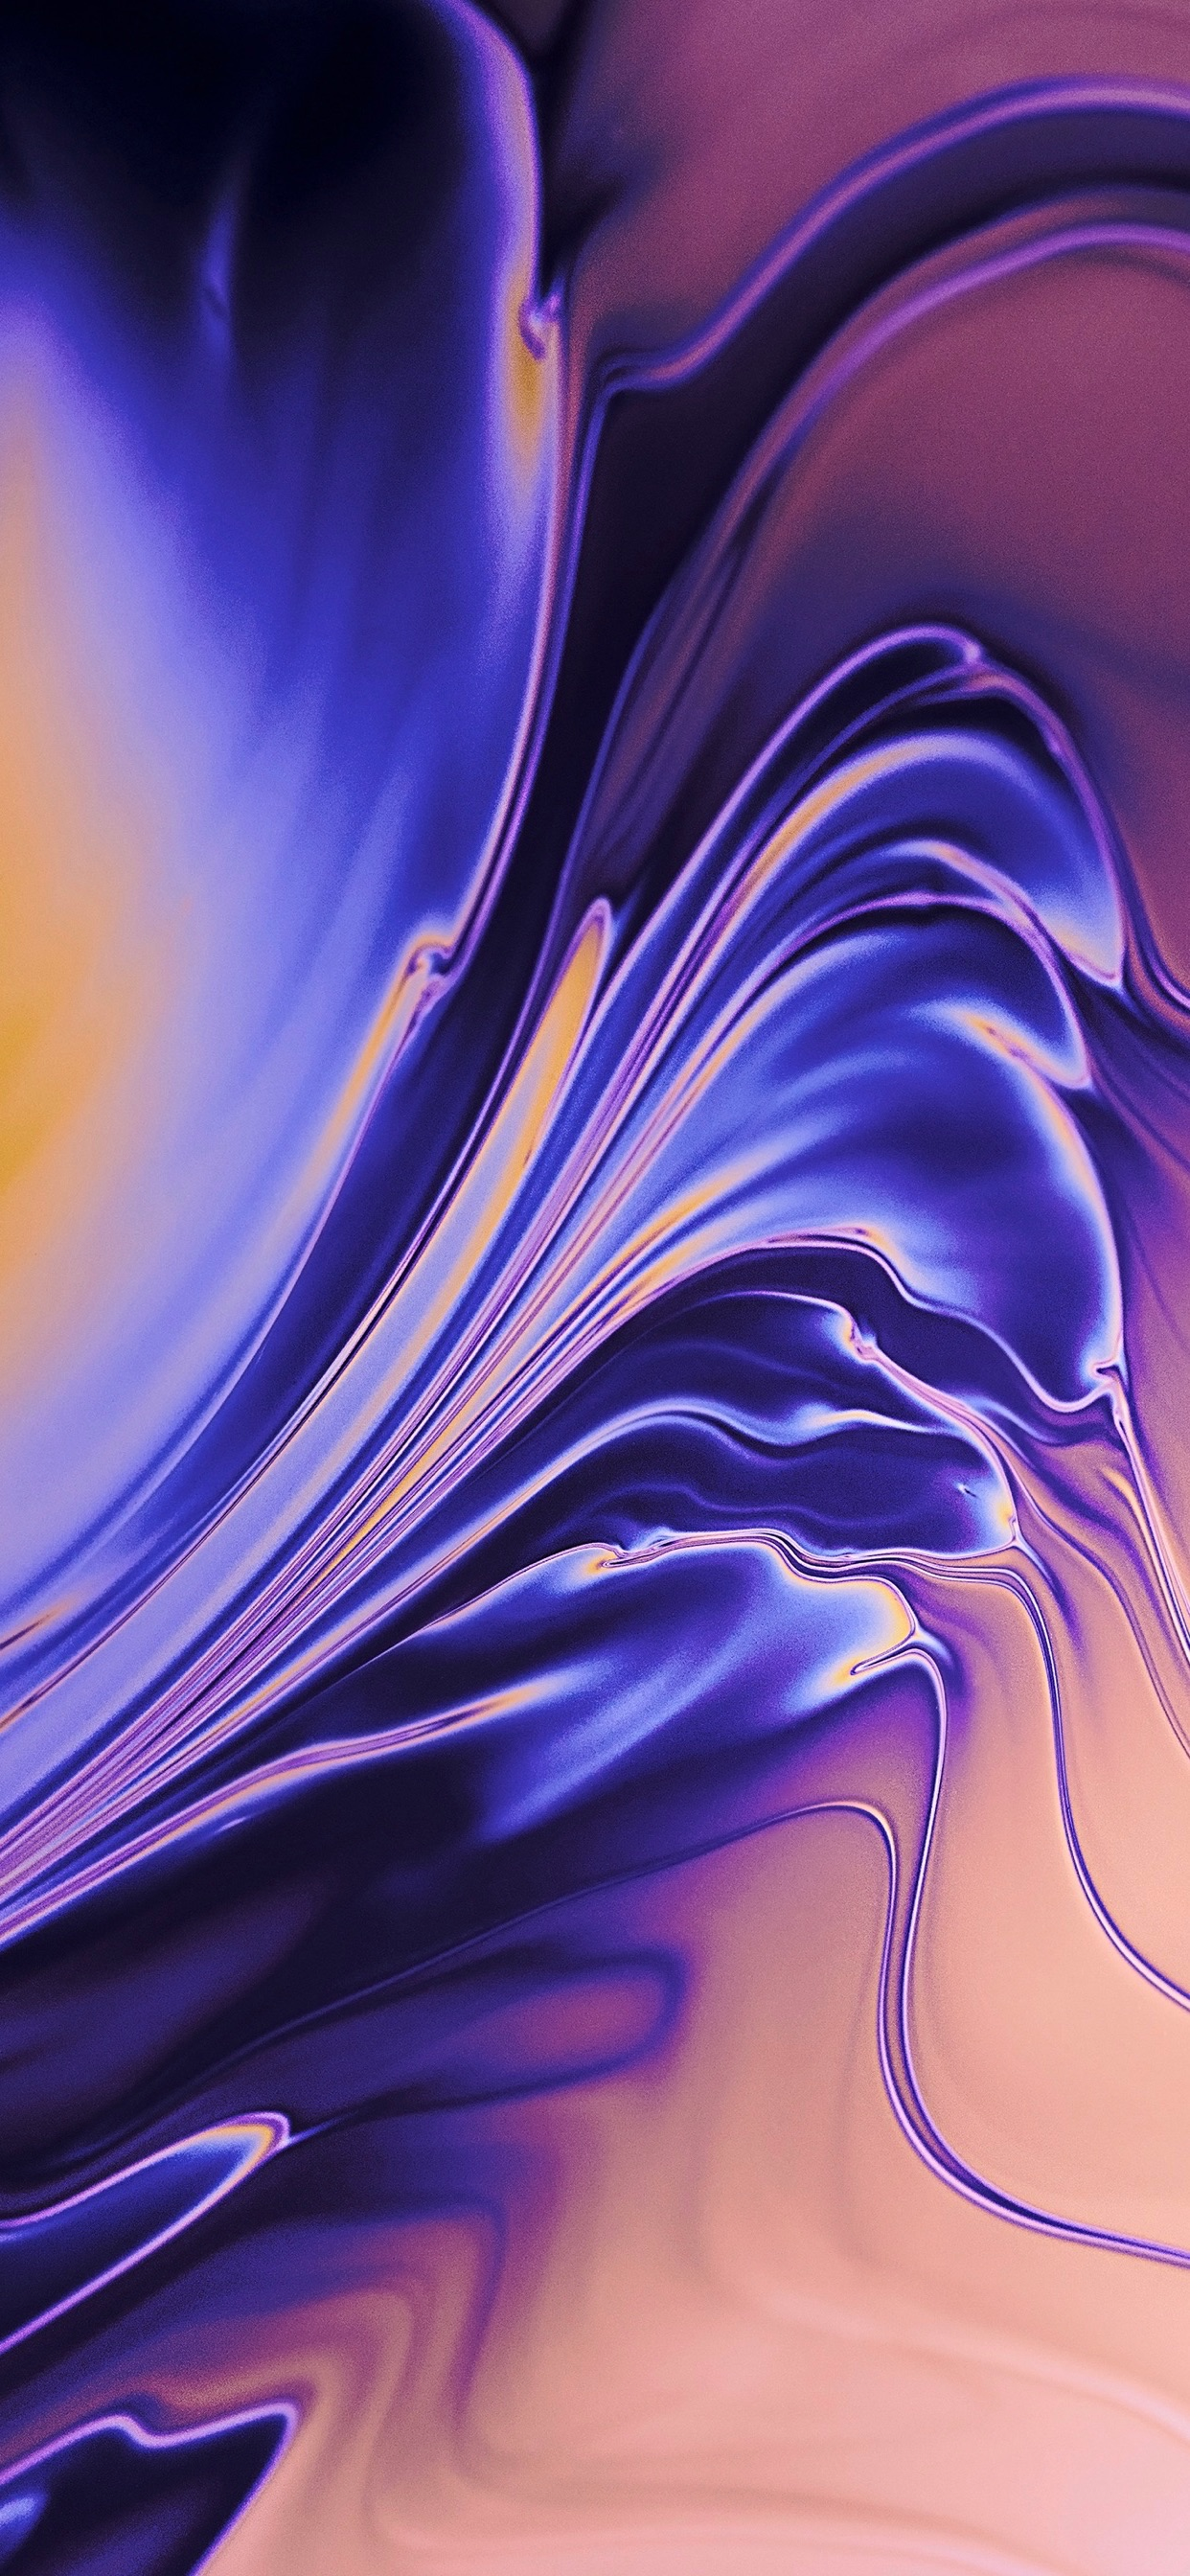 Wallpaper Saints: Abstract iPhone Wallpapers From MacOS Desktop Pictures Folder